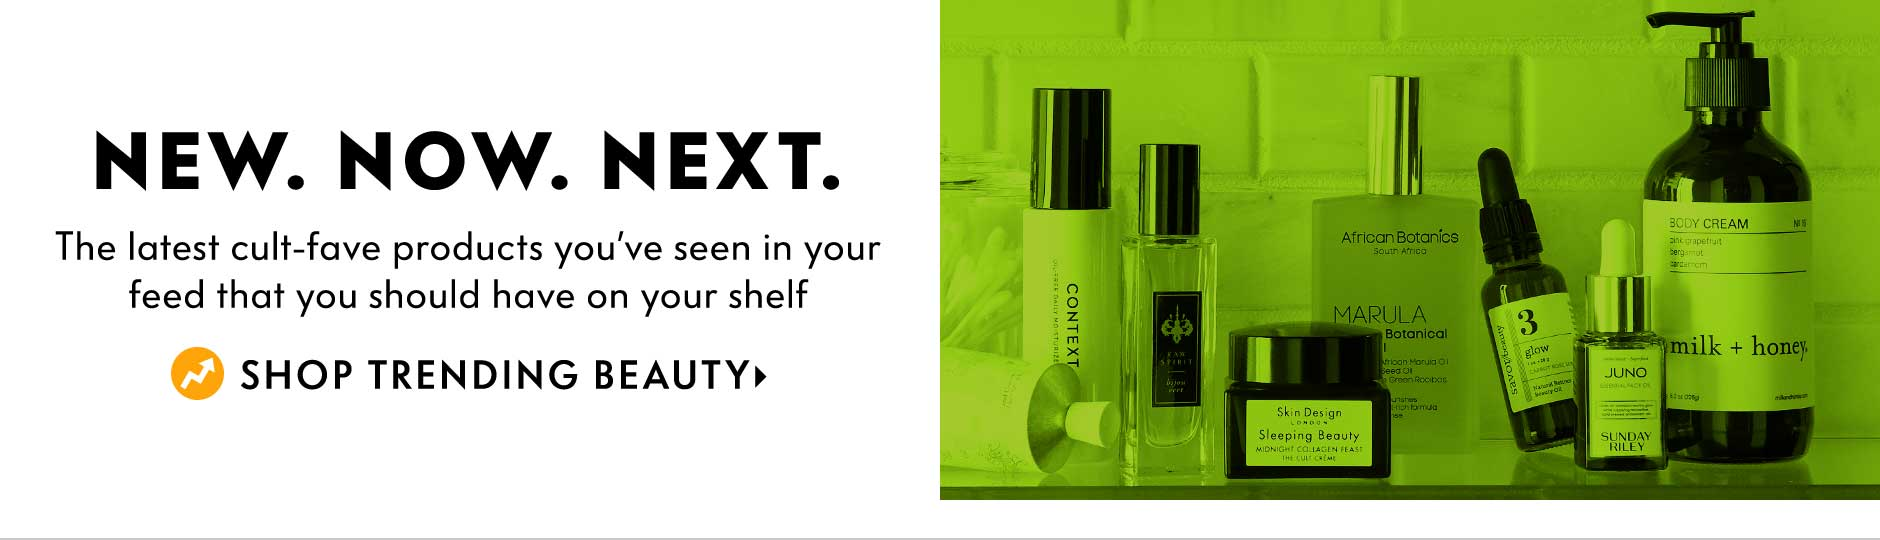 New. Now. Next. The latest cult-fave products you???ve seen in your feed that you should have on your shelf